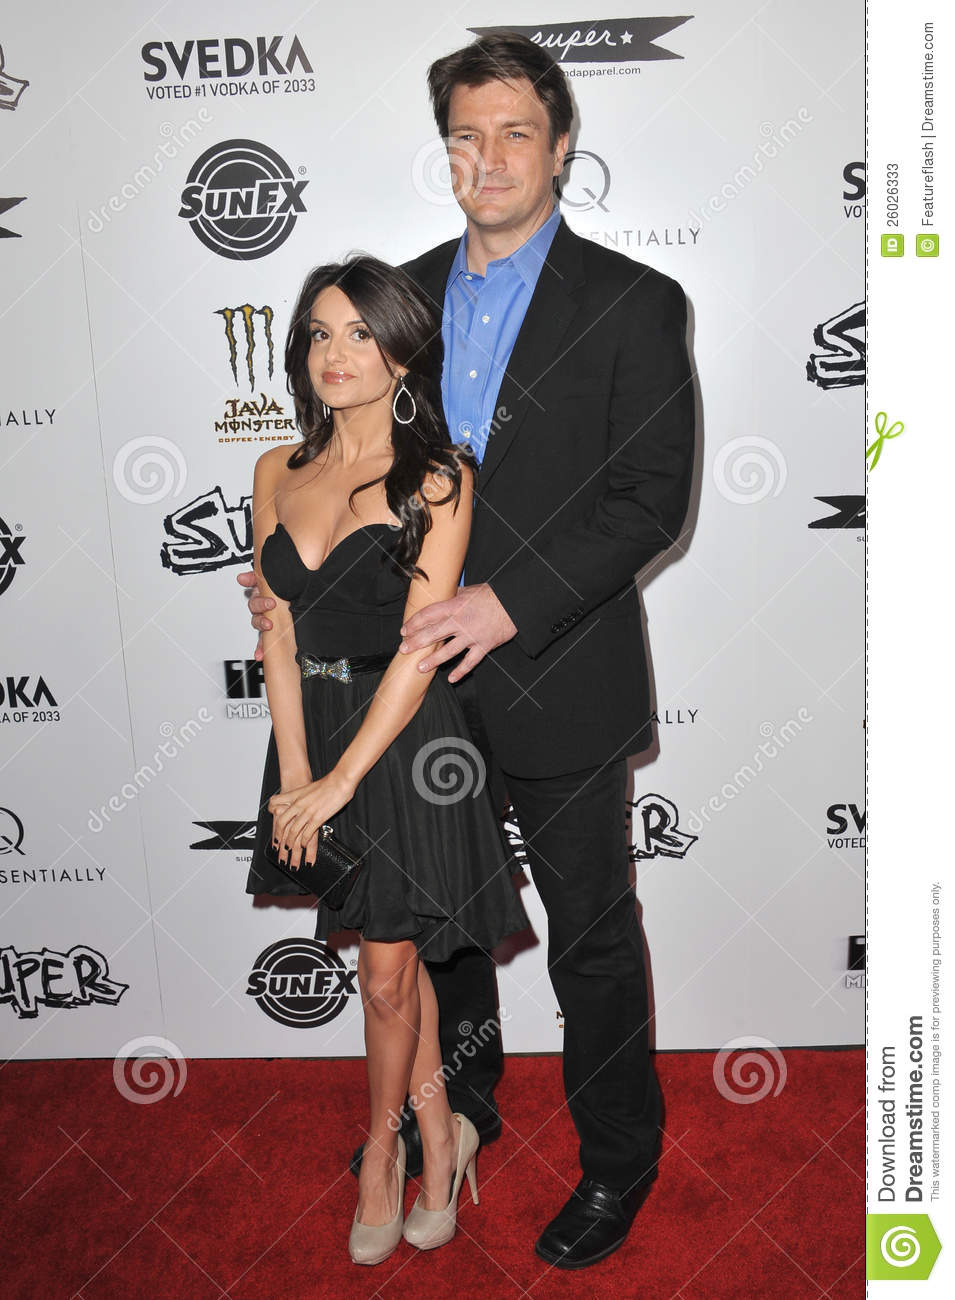 Nathan Fillion,Mikaela Hoover Editorial Stock Photo - Image: 26026333